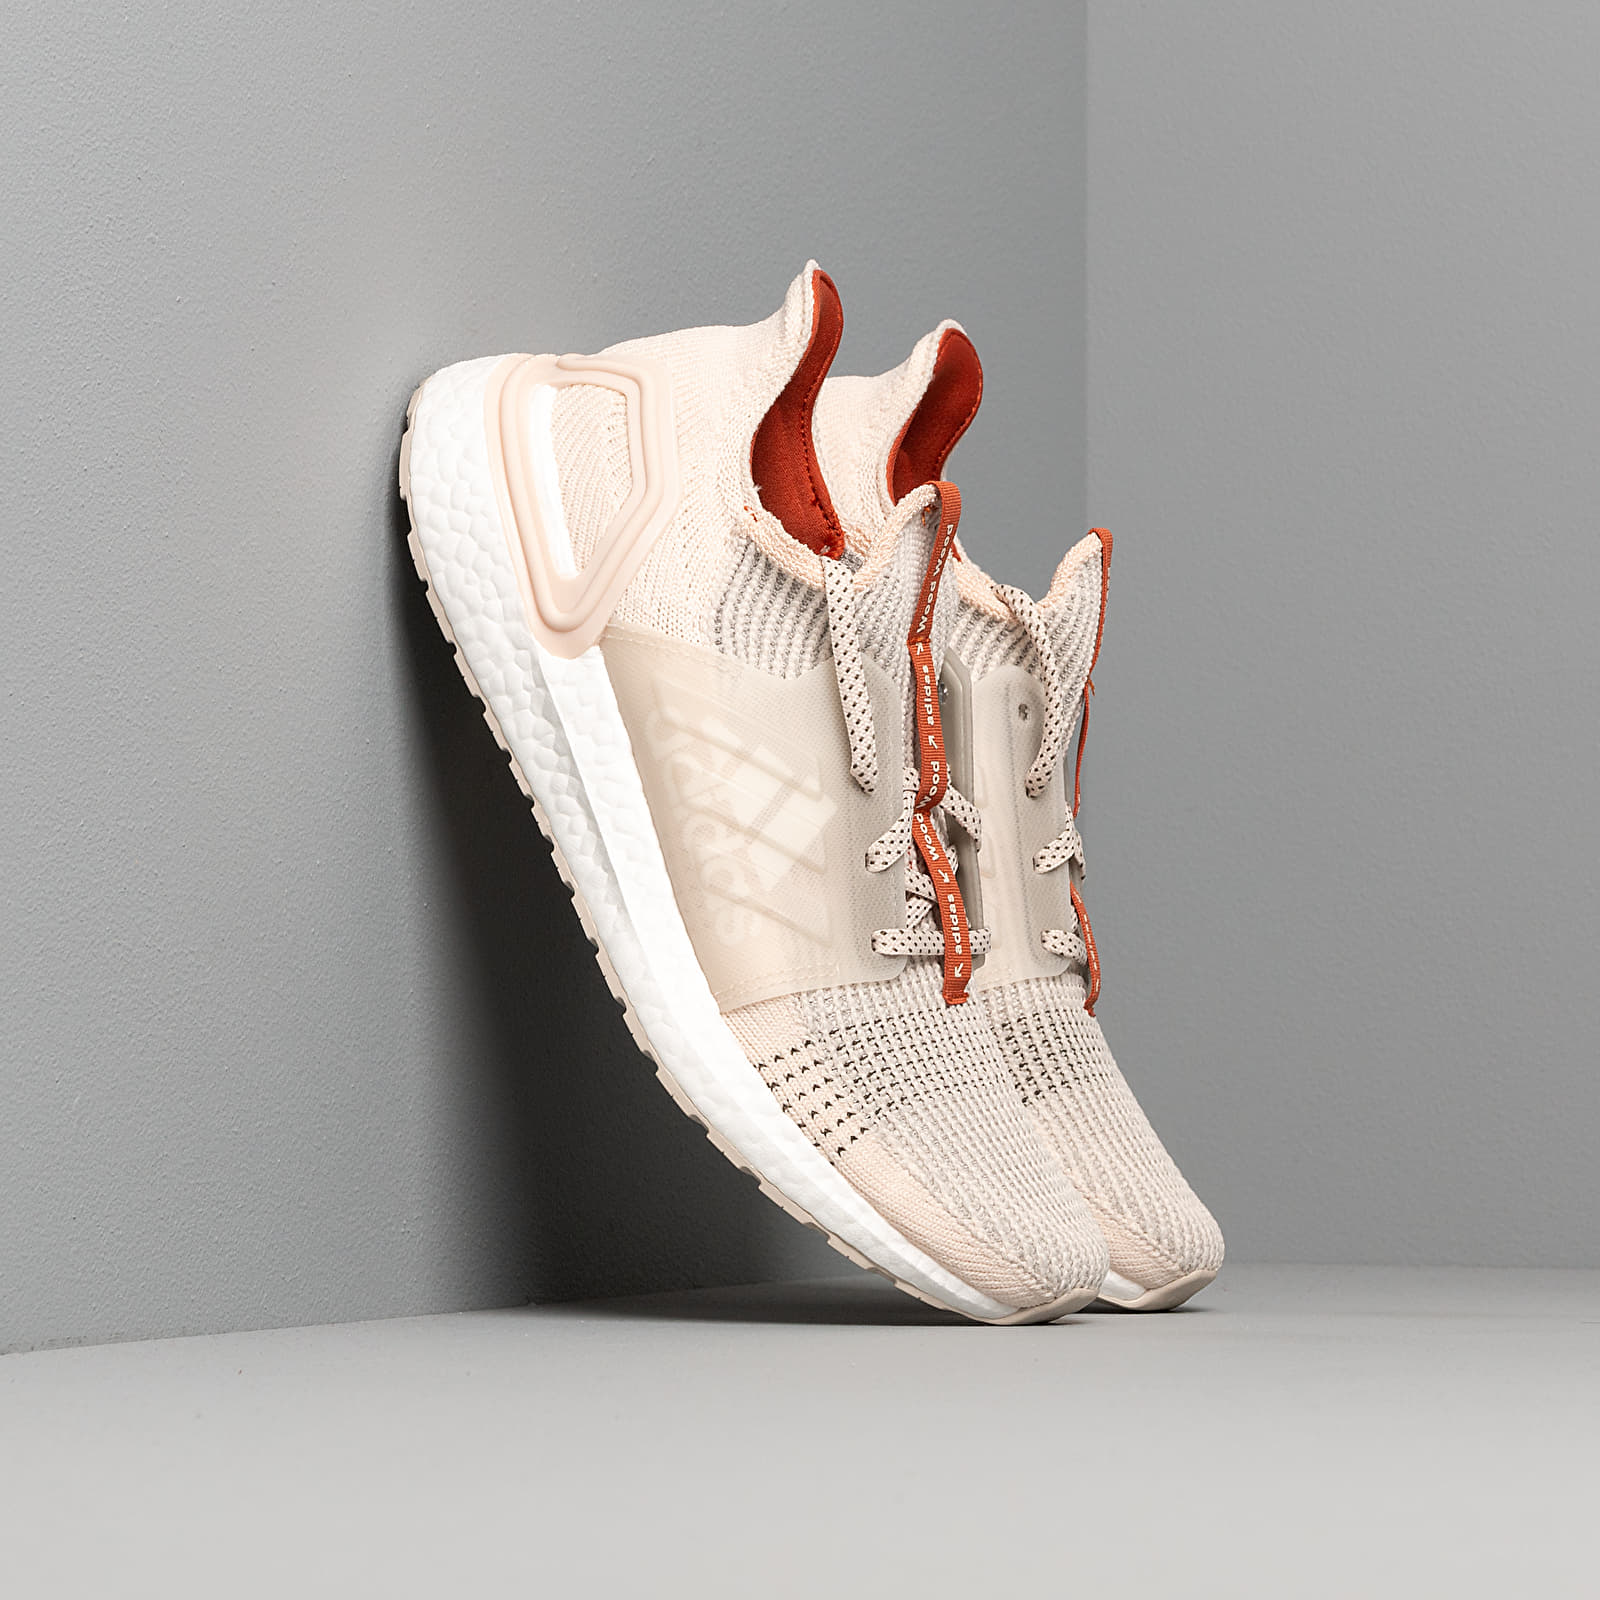 Men's shoes adidas x Wood Wood UltraBOOST 19 Linen/ Fox Red/ Clear Brown